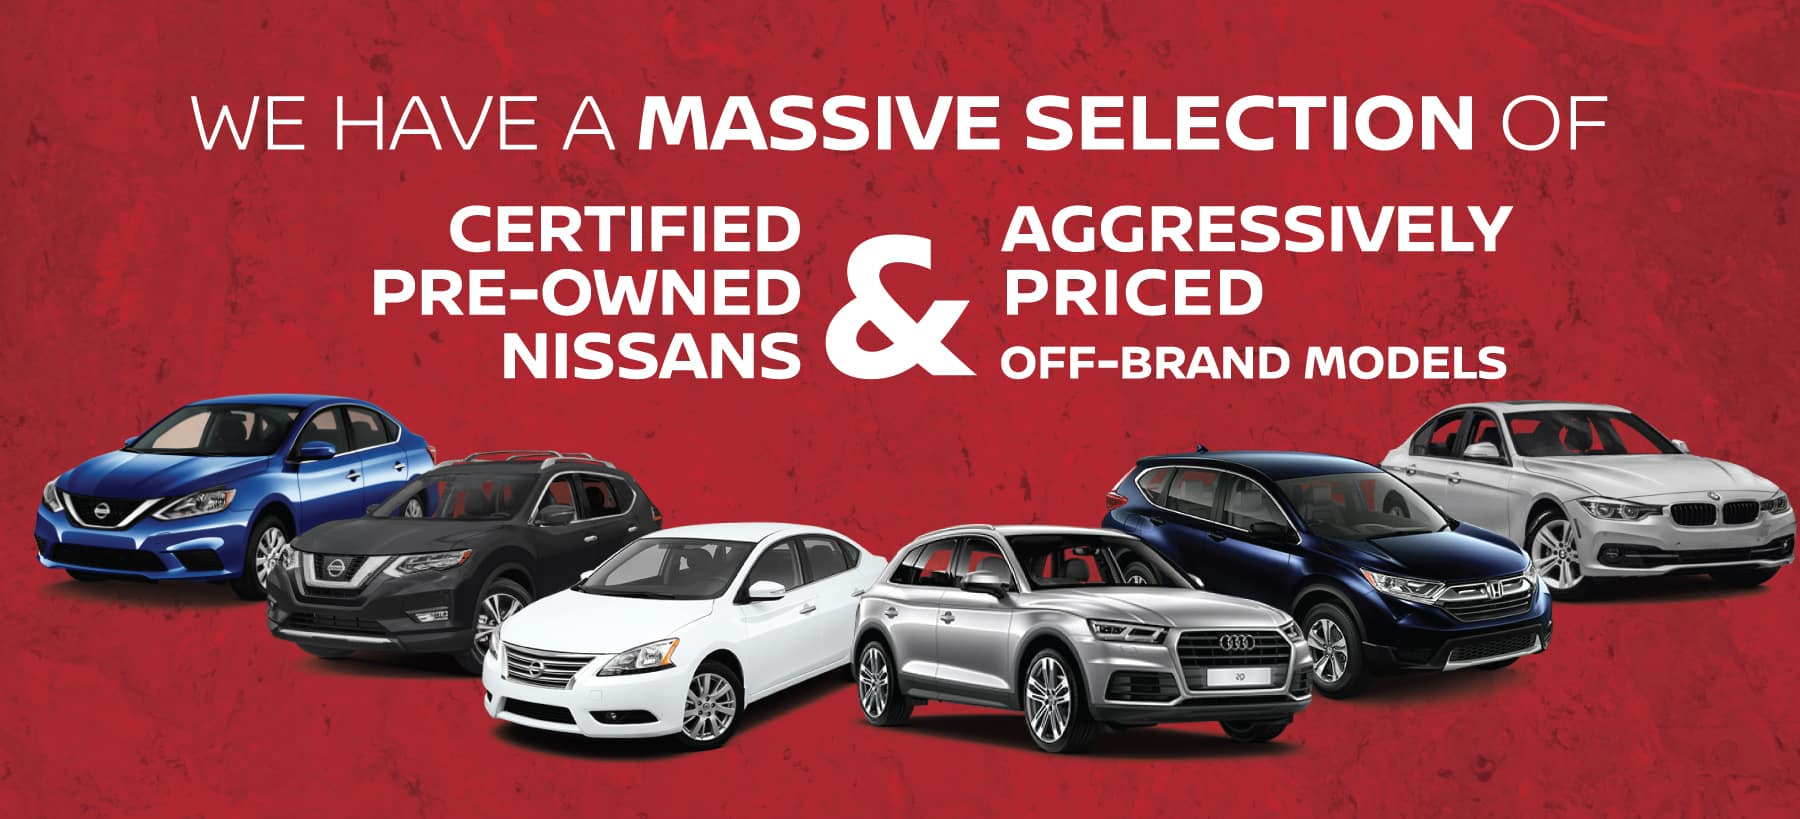 Nissan Dealers In Nj >> Bridgewater Nissan Nissan Dealer In Bridgewater Nj